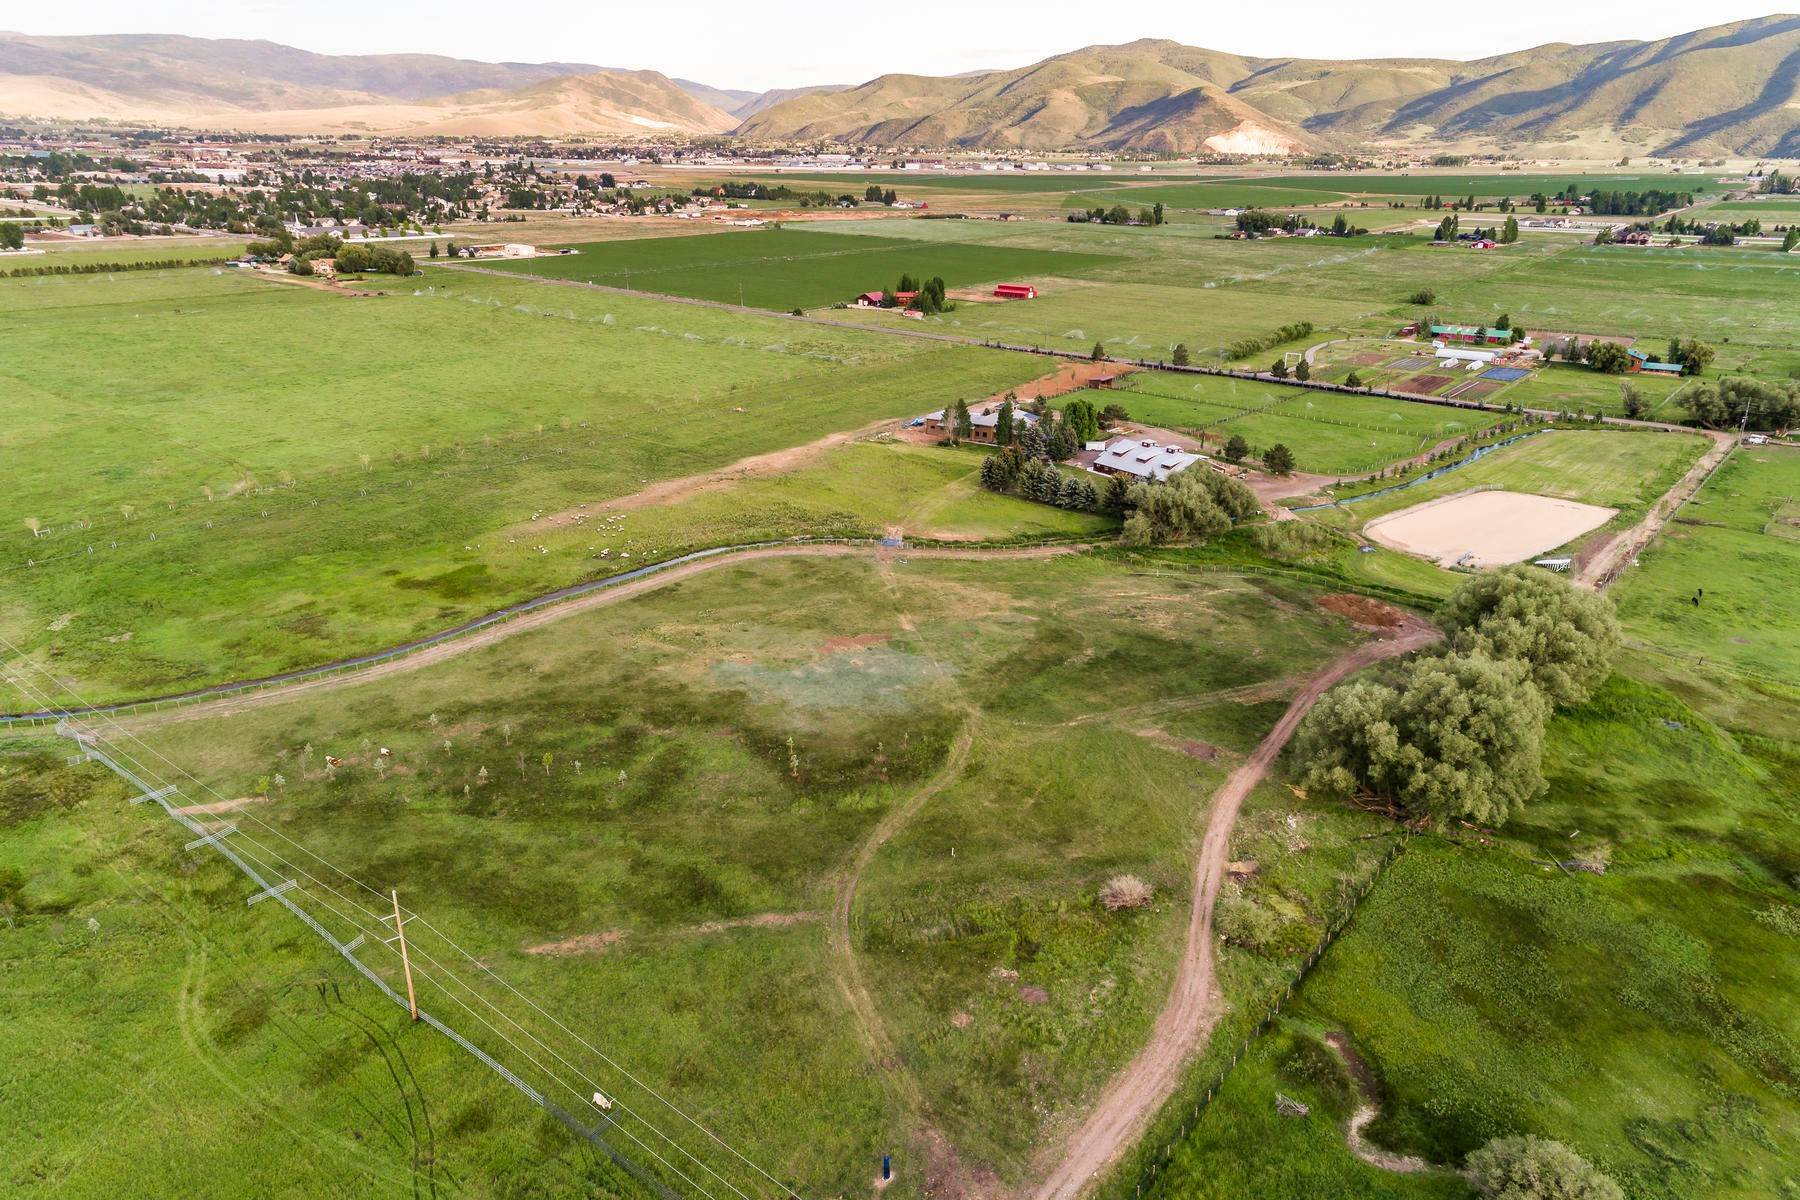 5. Land for Sale at Beautiful 7.68 Acre Lot Near The Provo River 1500 W Midway Ln, #9 Heber, Utah 84032 United States